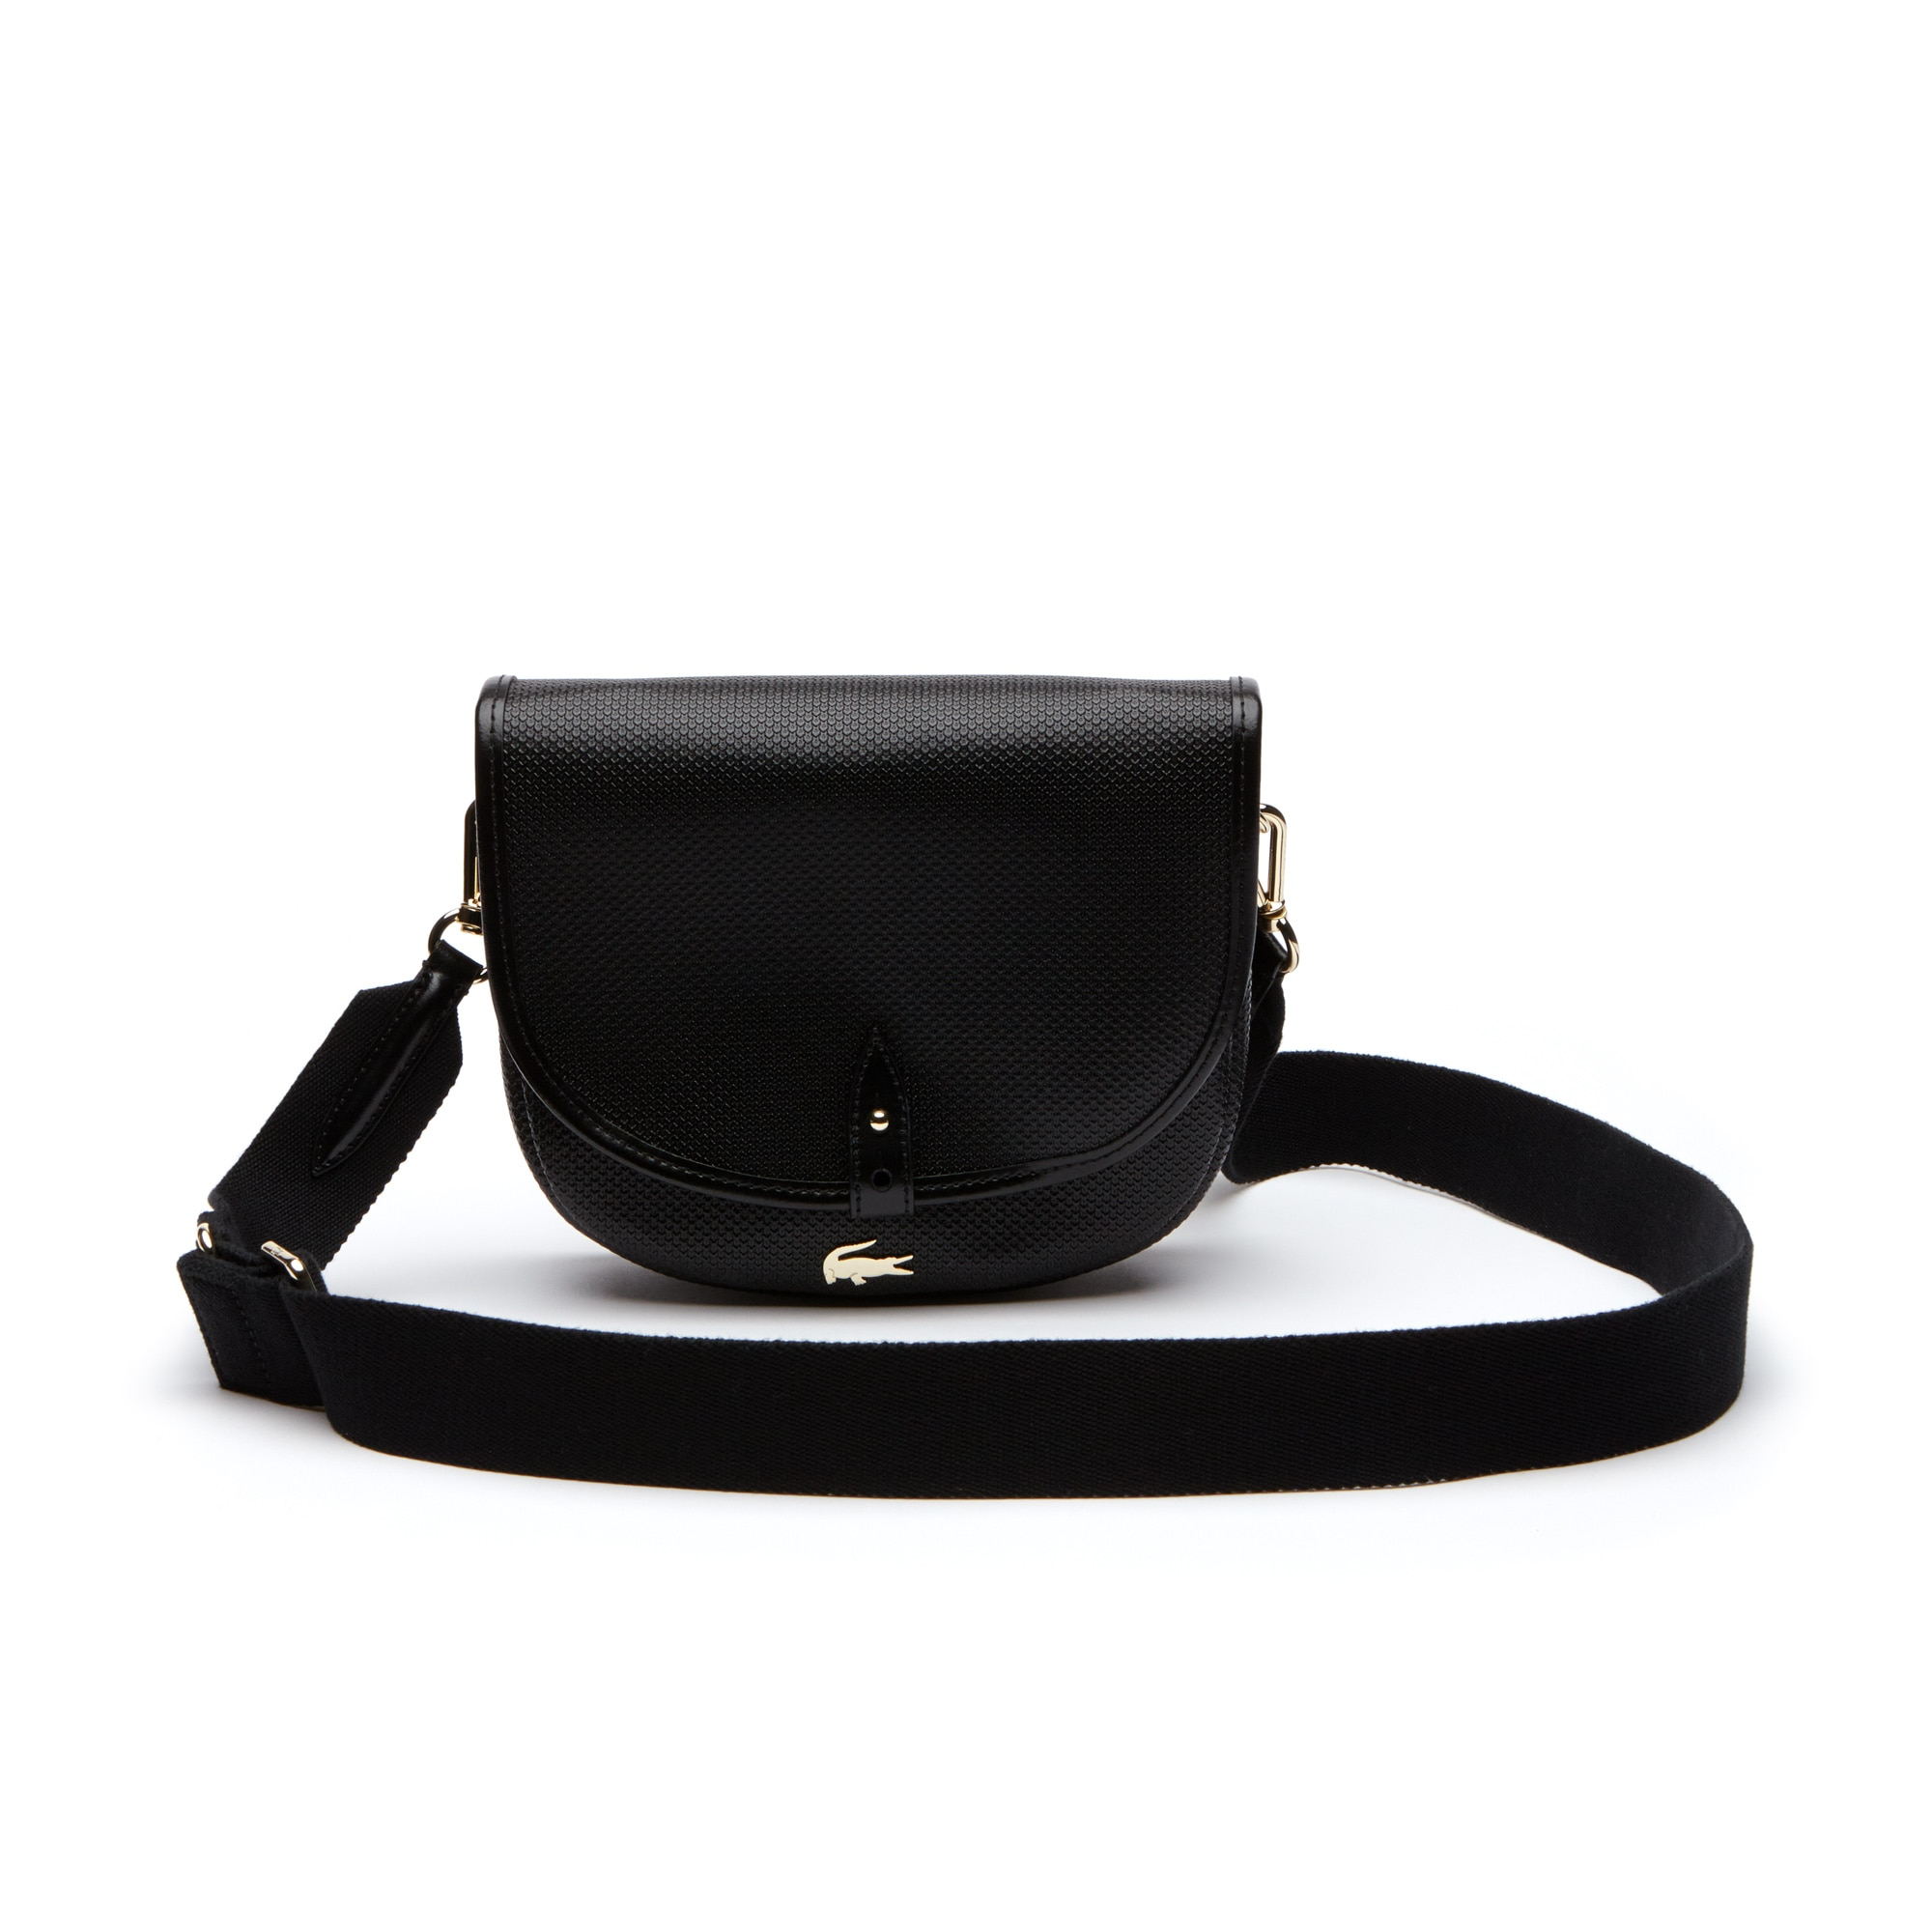 Women'S Chantaco Piqué Leather Flap Crossover Bag in Black from Lacoste